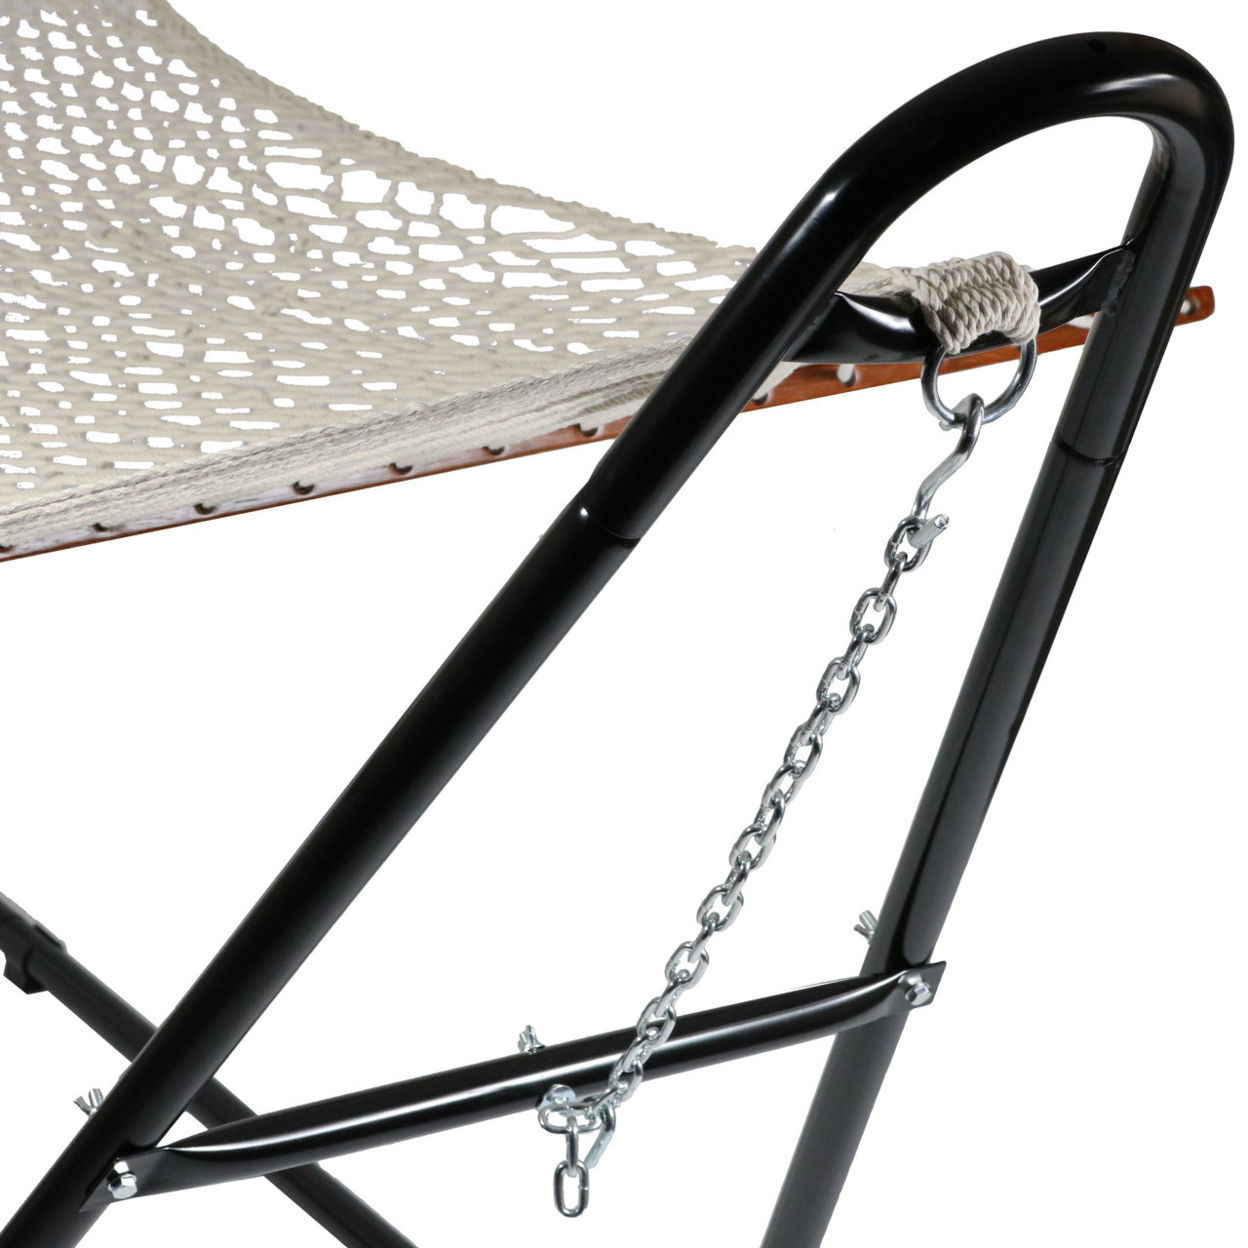 Sunnydaze Cotton Double Wide 2-Person Rope Hammock with Spreader Bars and Multi-Use Steel Stand, 440 Pound Capacity 58bdeb2a2a00e4769755a94f